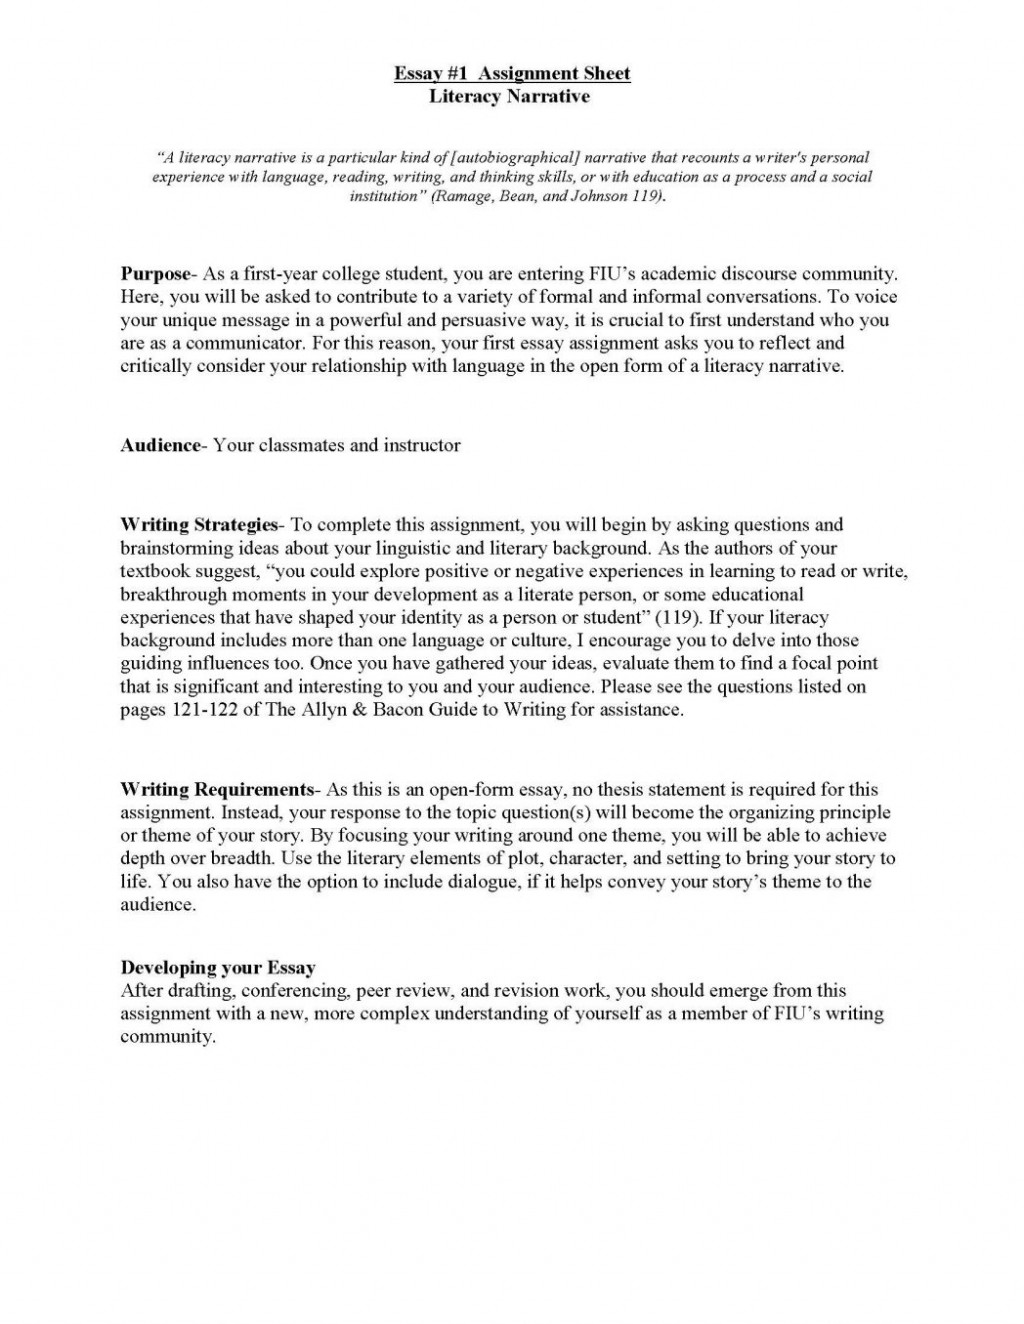 005 Thesis Statement For Narrativey Example Examples Of Outline Good Descriptive Topics Literacy Unit Assignment Spring 2012 P Personal 1048x1356 Astounding Narrative Essay Large